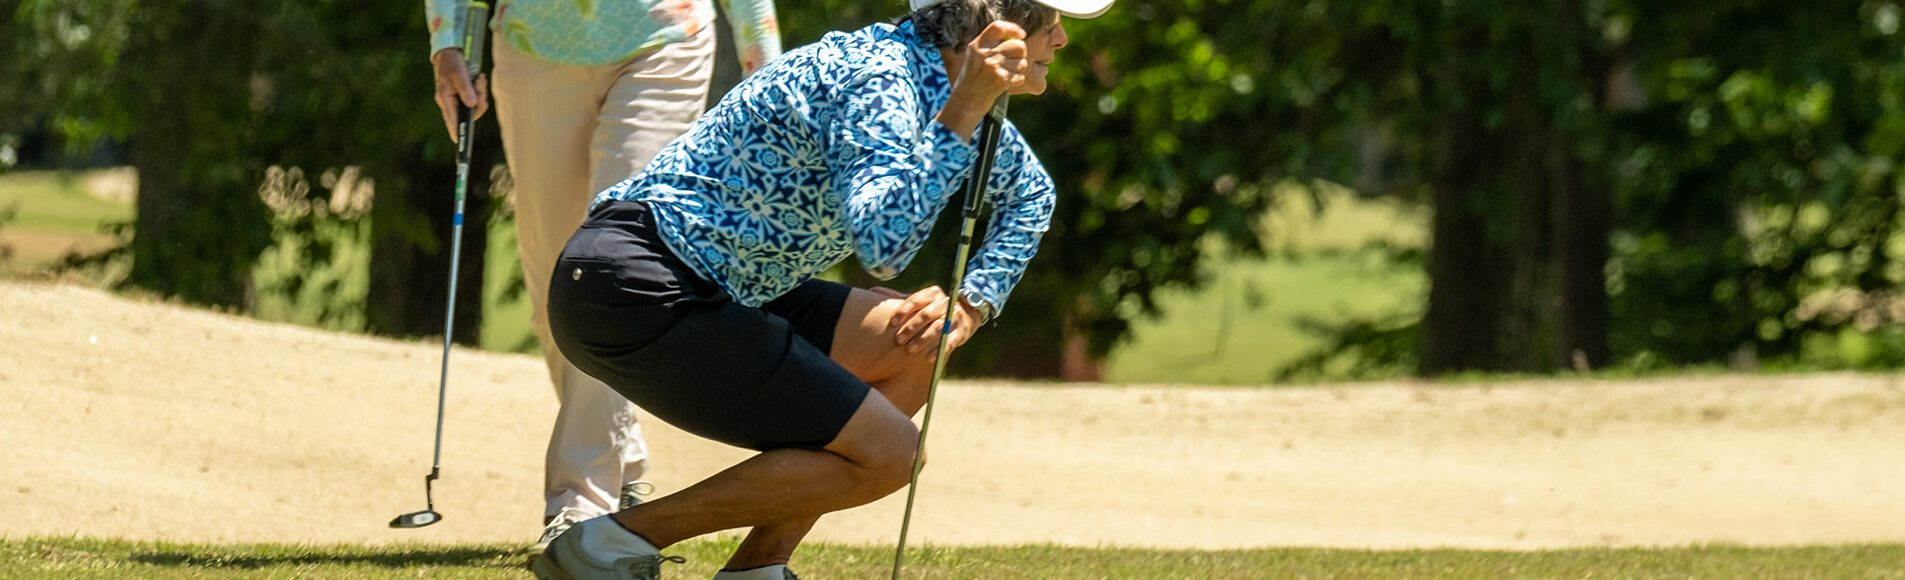 28th Annual Golf Tourney Draws Big Numbers